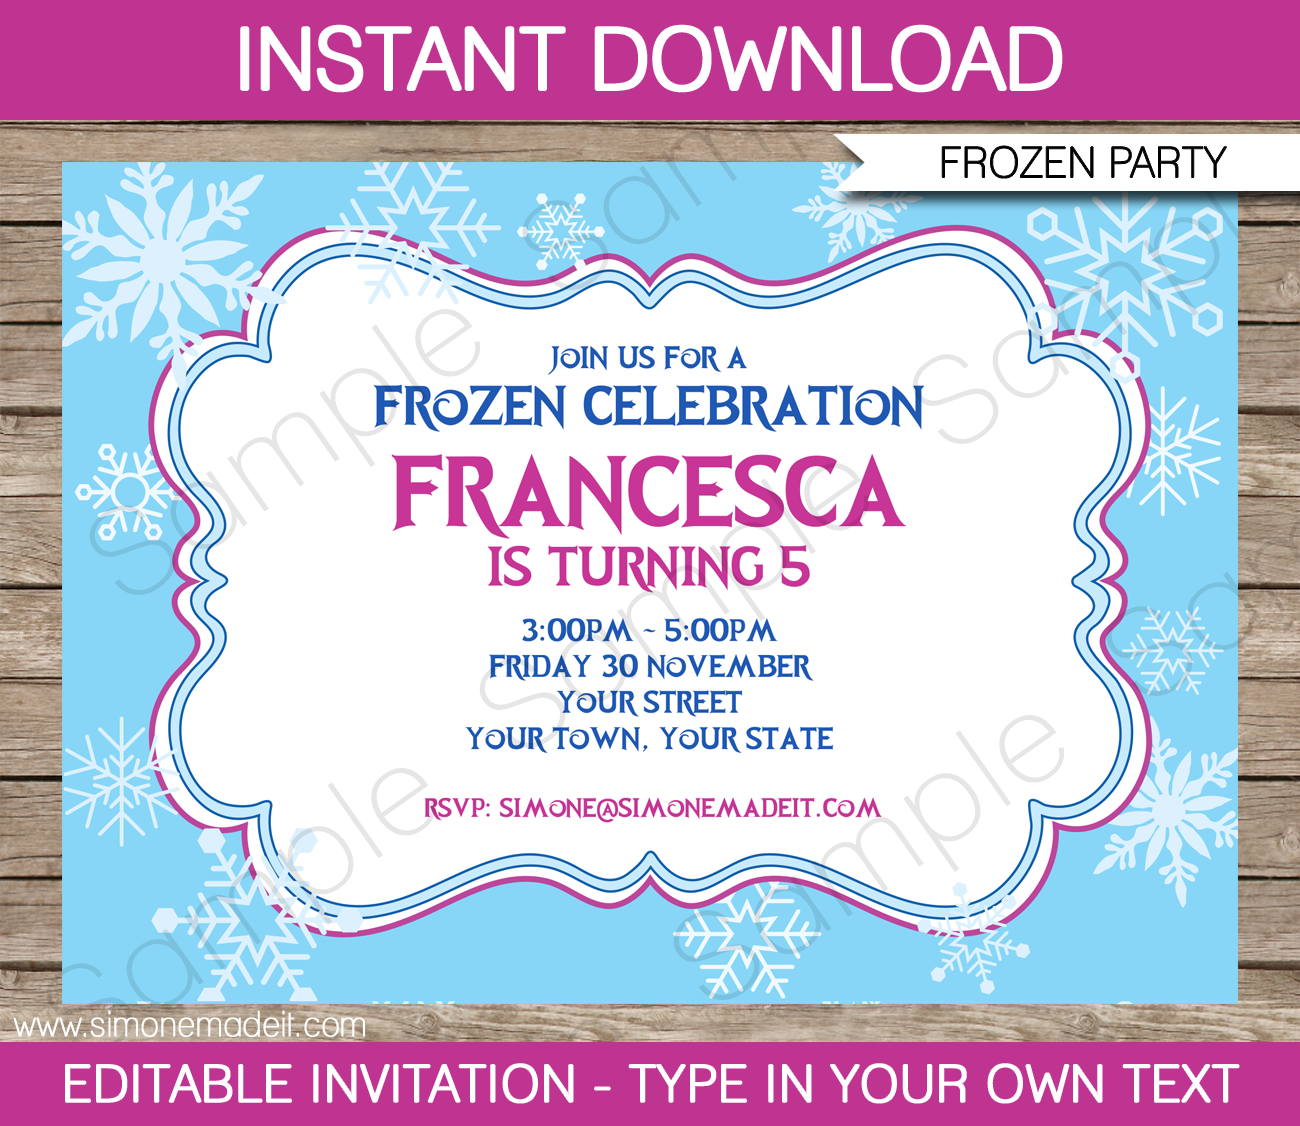 photograph relating to Frozen Invitations Printable identified as Frozen Invitation Template